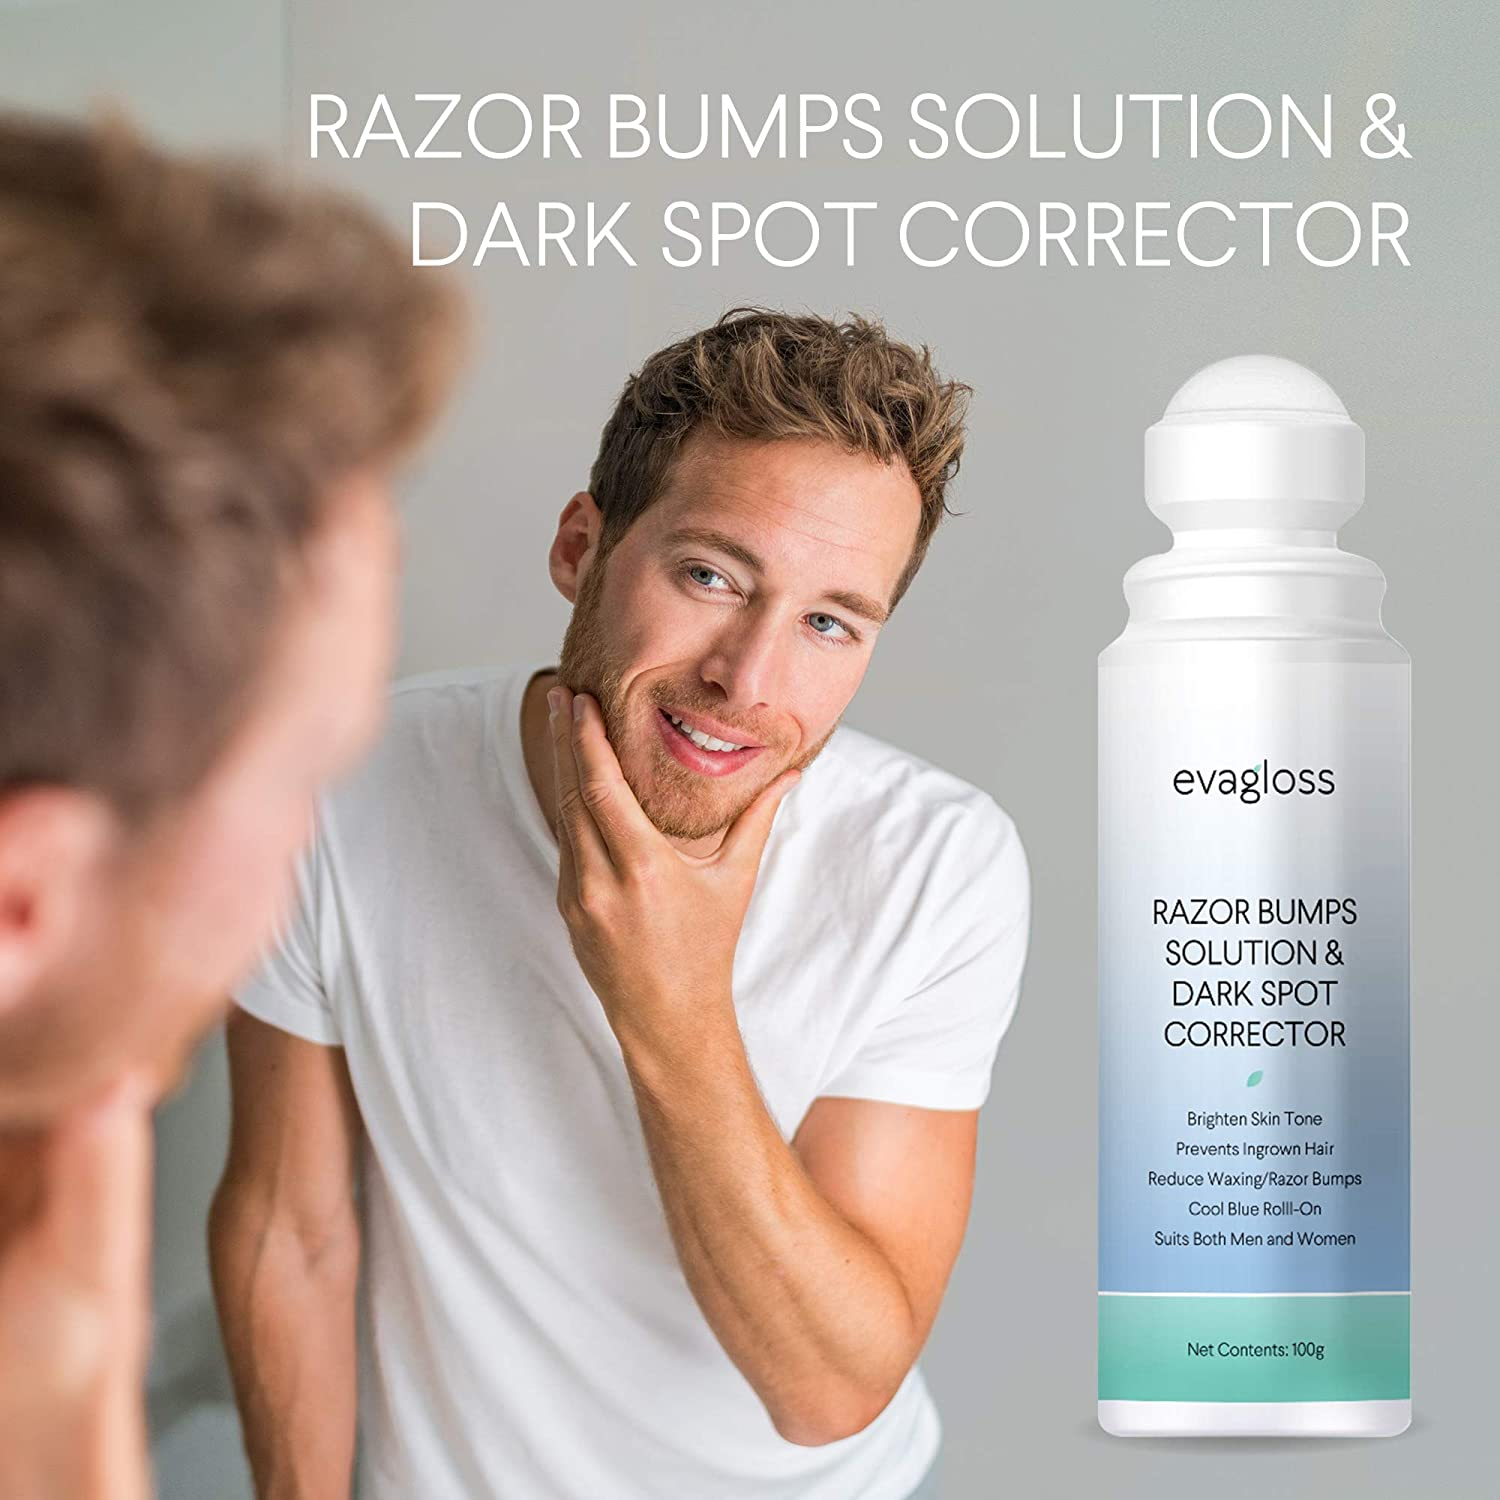 Evagloss Razor Bumps Solution After Shave Repair Serum for Ingrown Hairs and Razor Burns Dark Spot